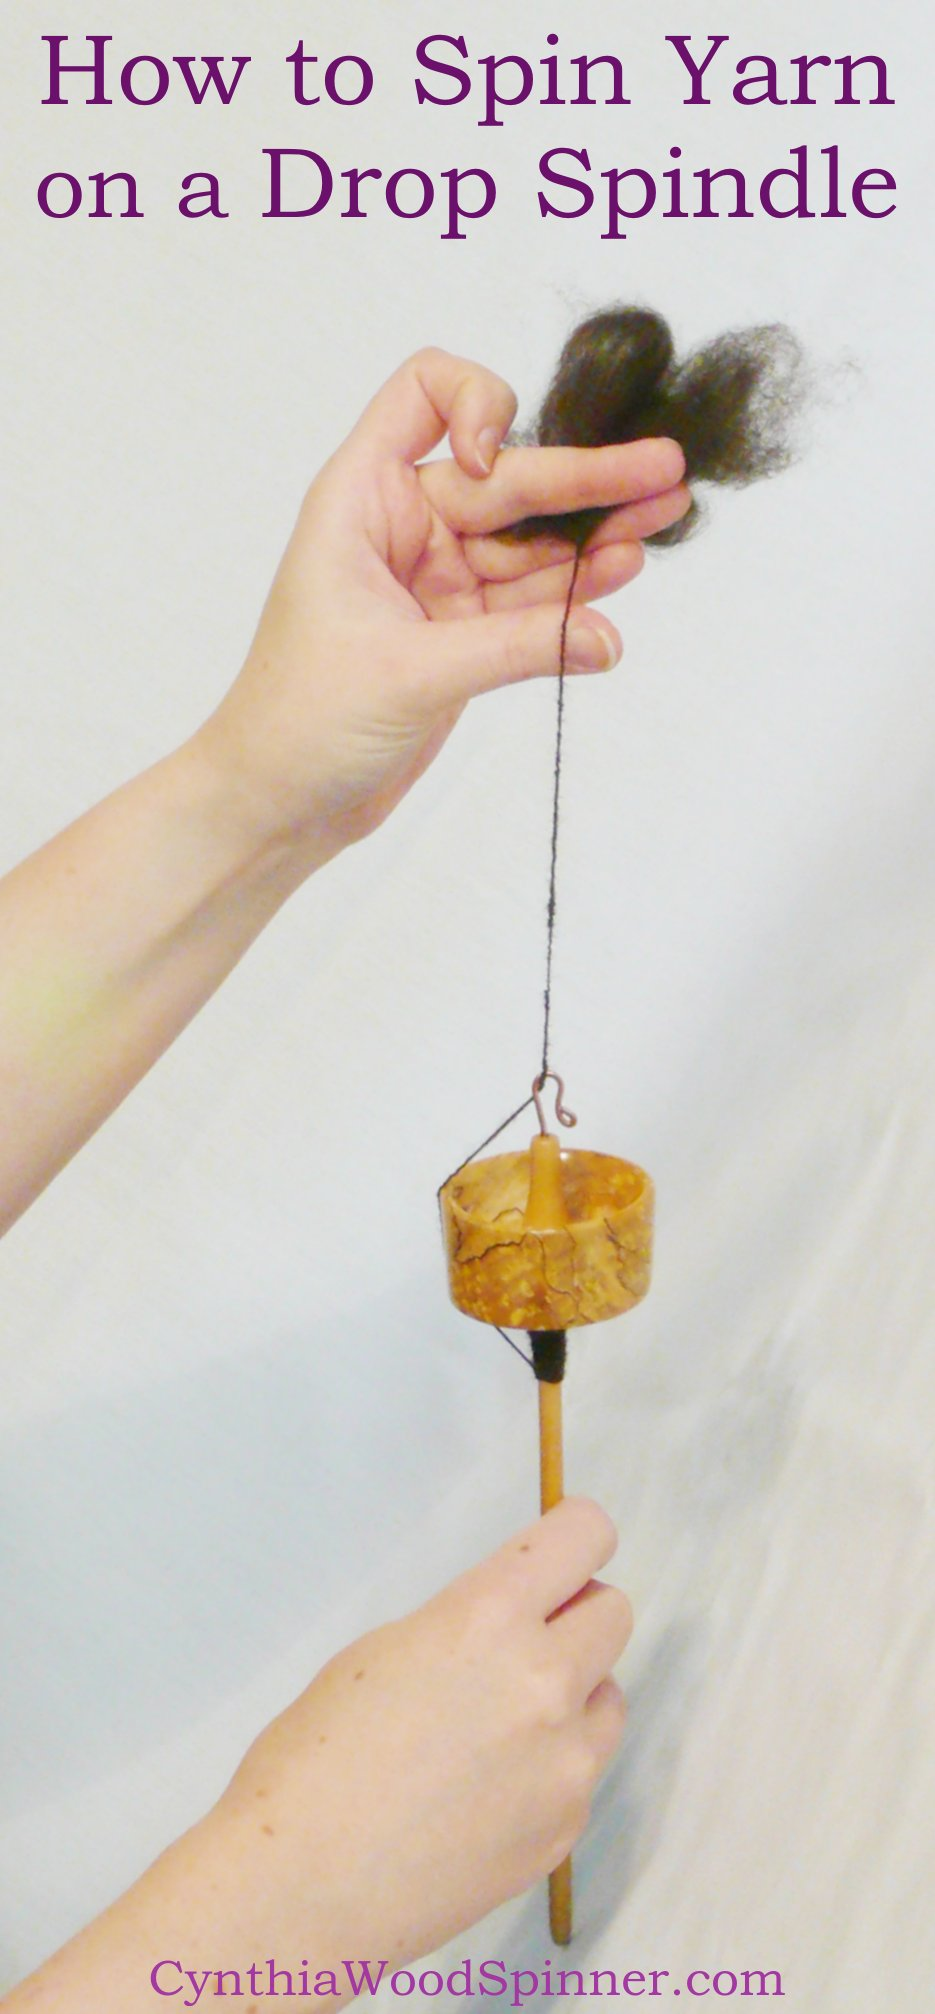 How to spin yarn on a top whorl drop spindle using park and draft.